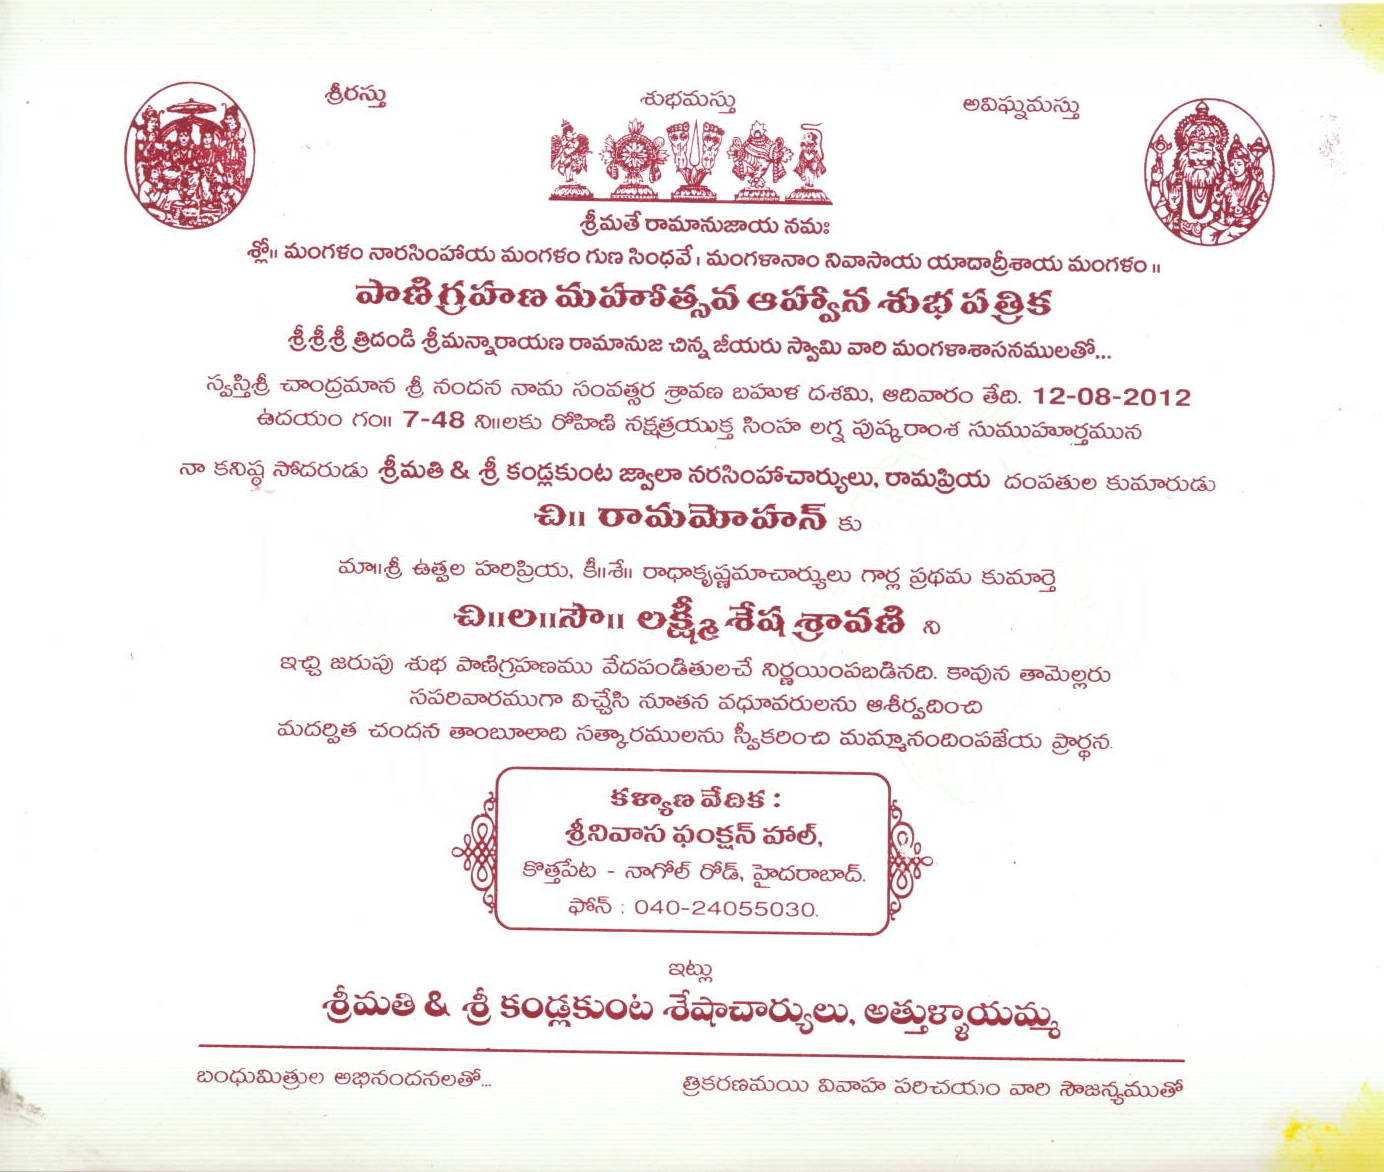 Marriage invitation cards in telugu matik for for Wedding invitation images in telugu